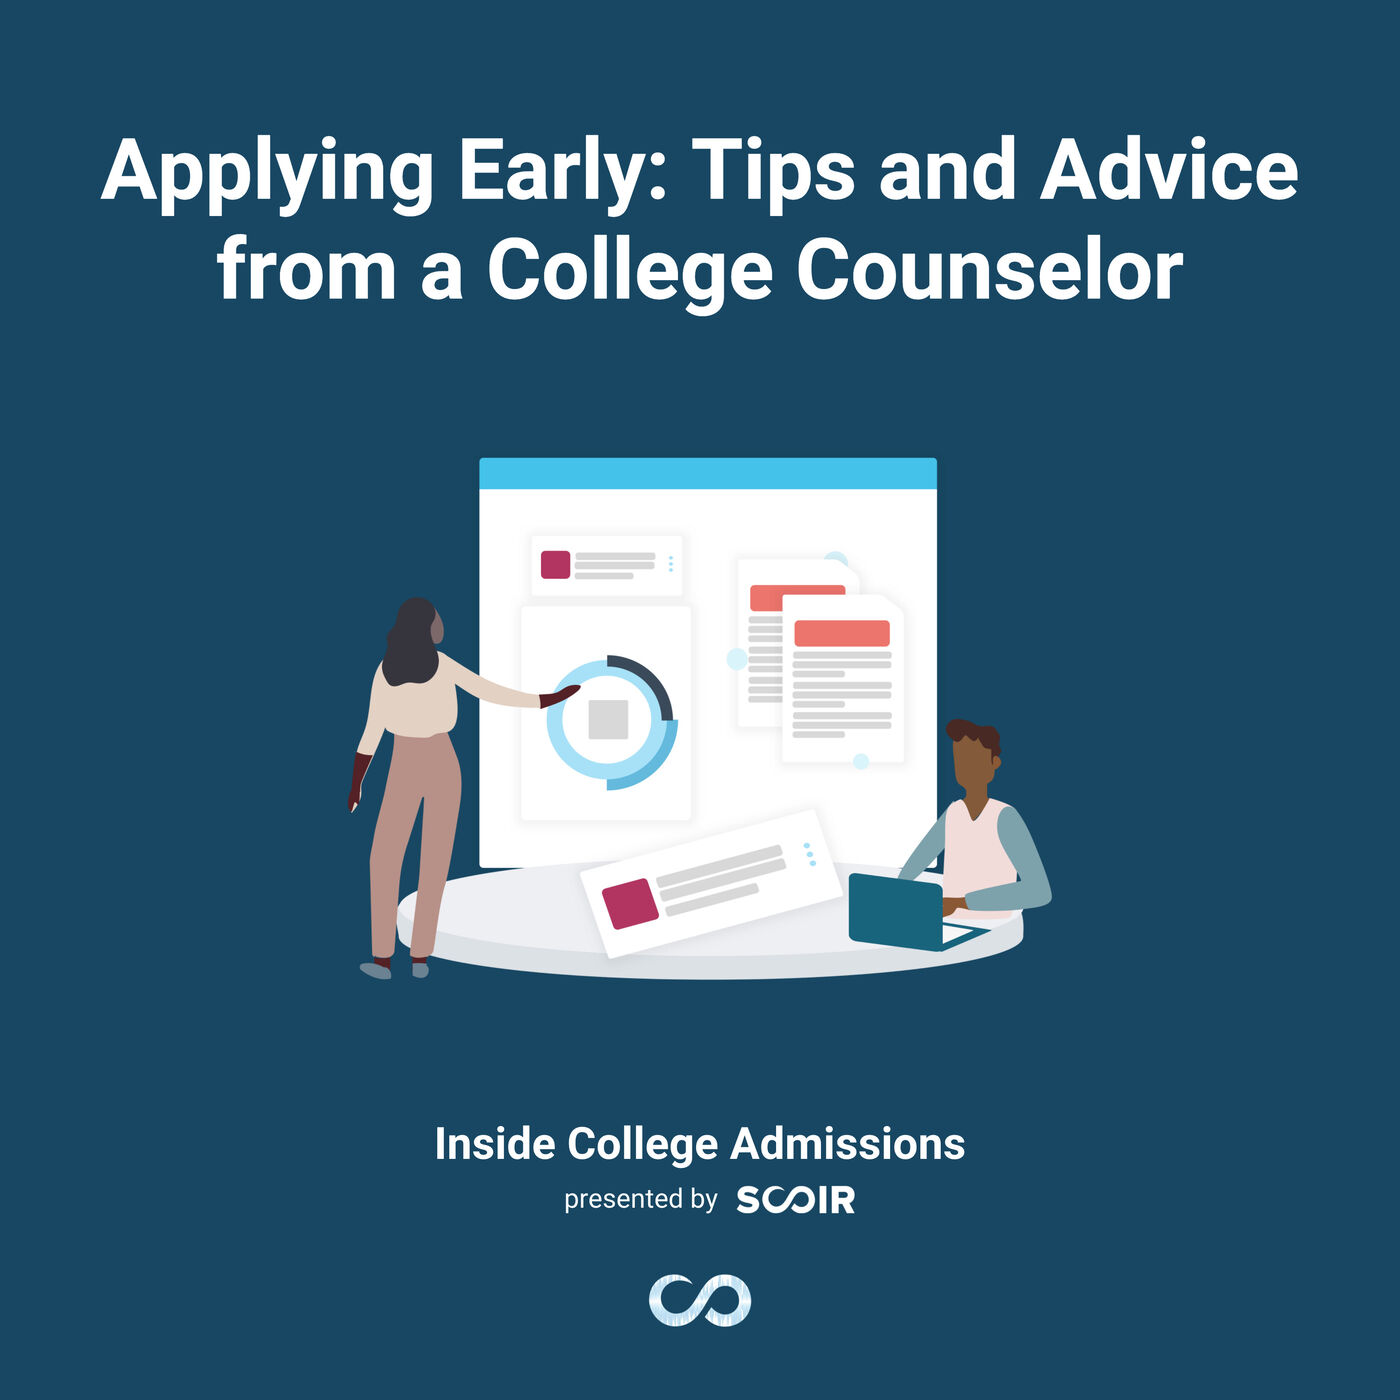 Applying Early: Tips and Advice from a College Counselor